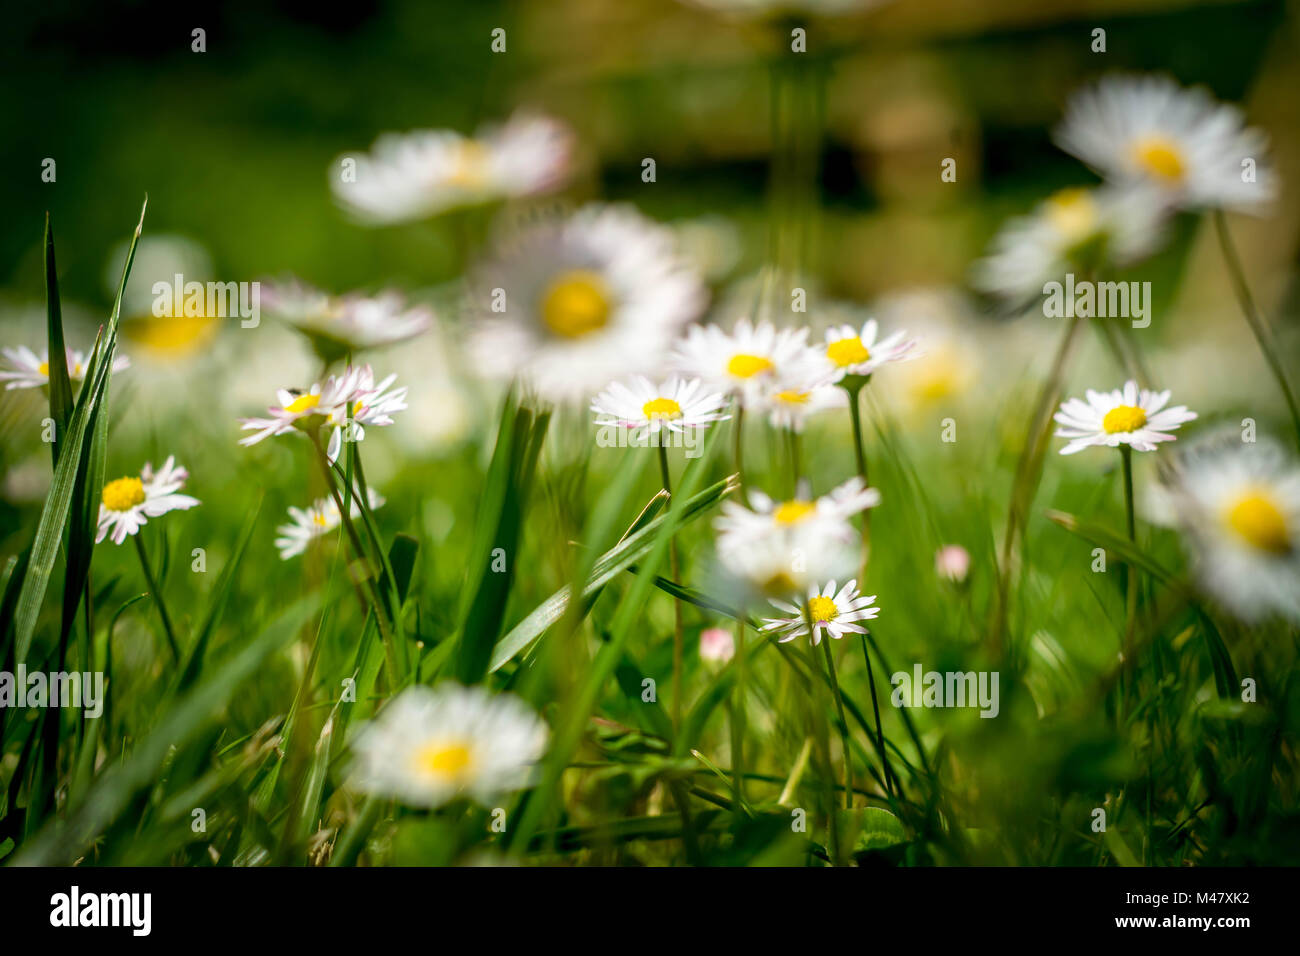 dandelions on a medow - second version - Stock Image